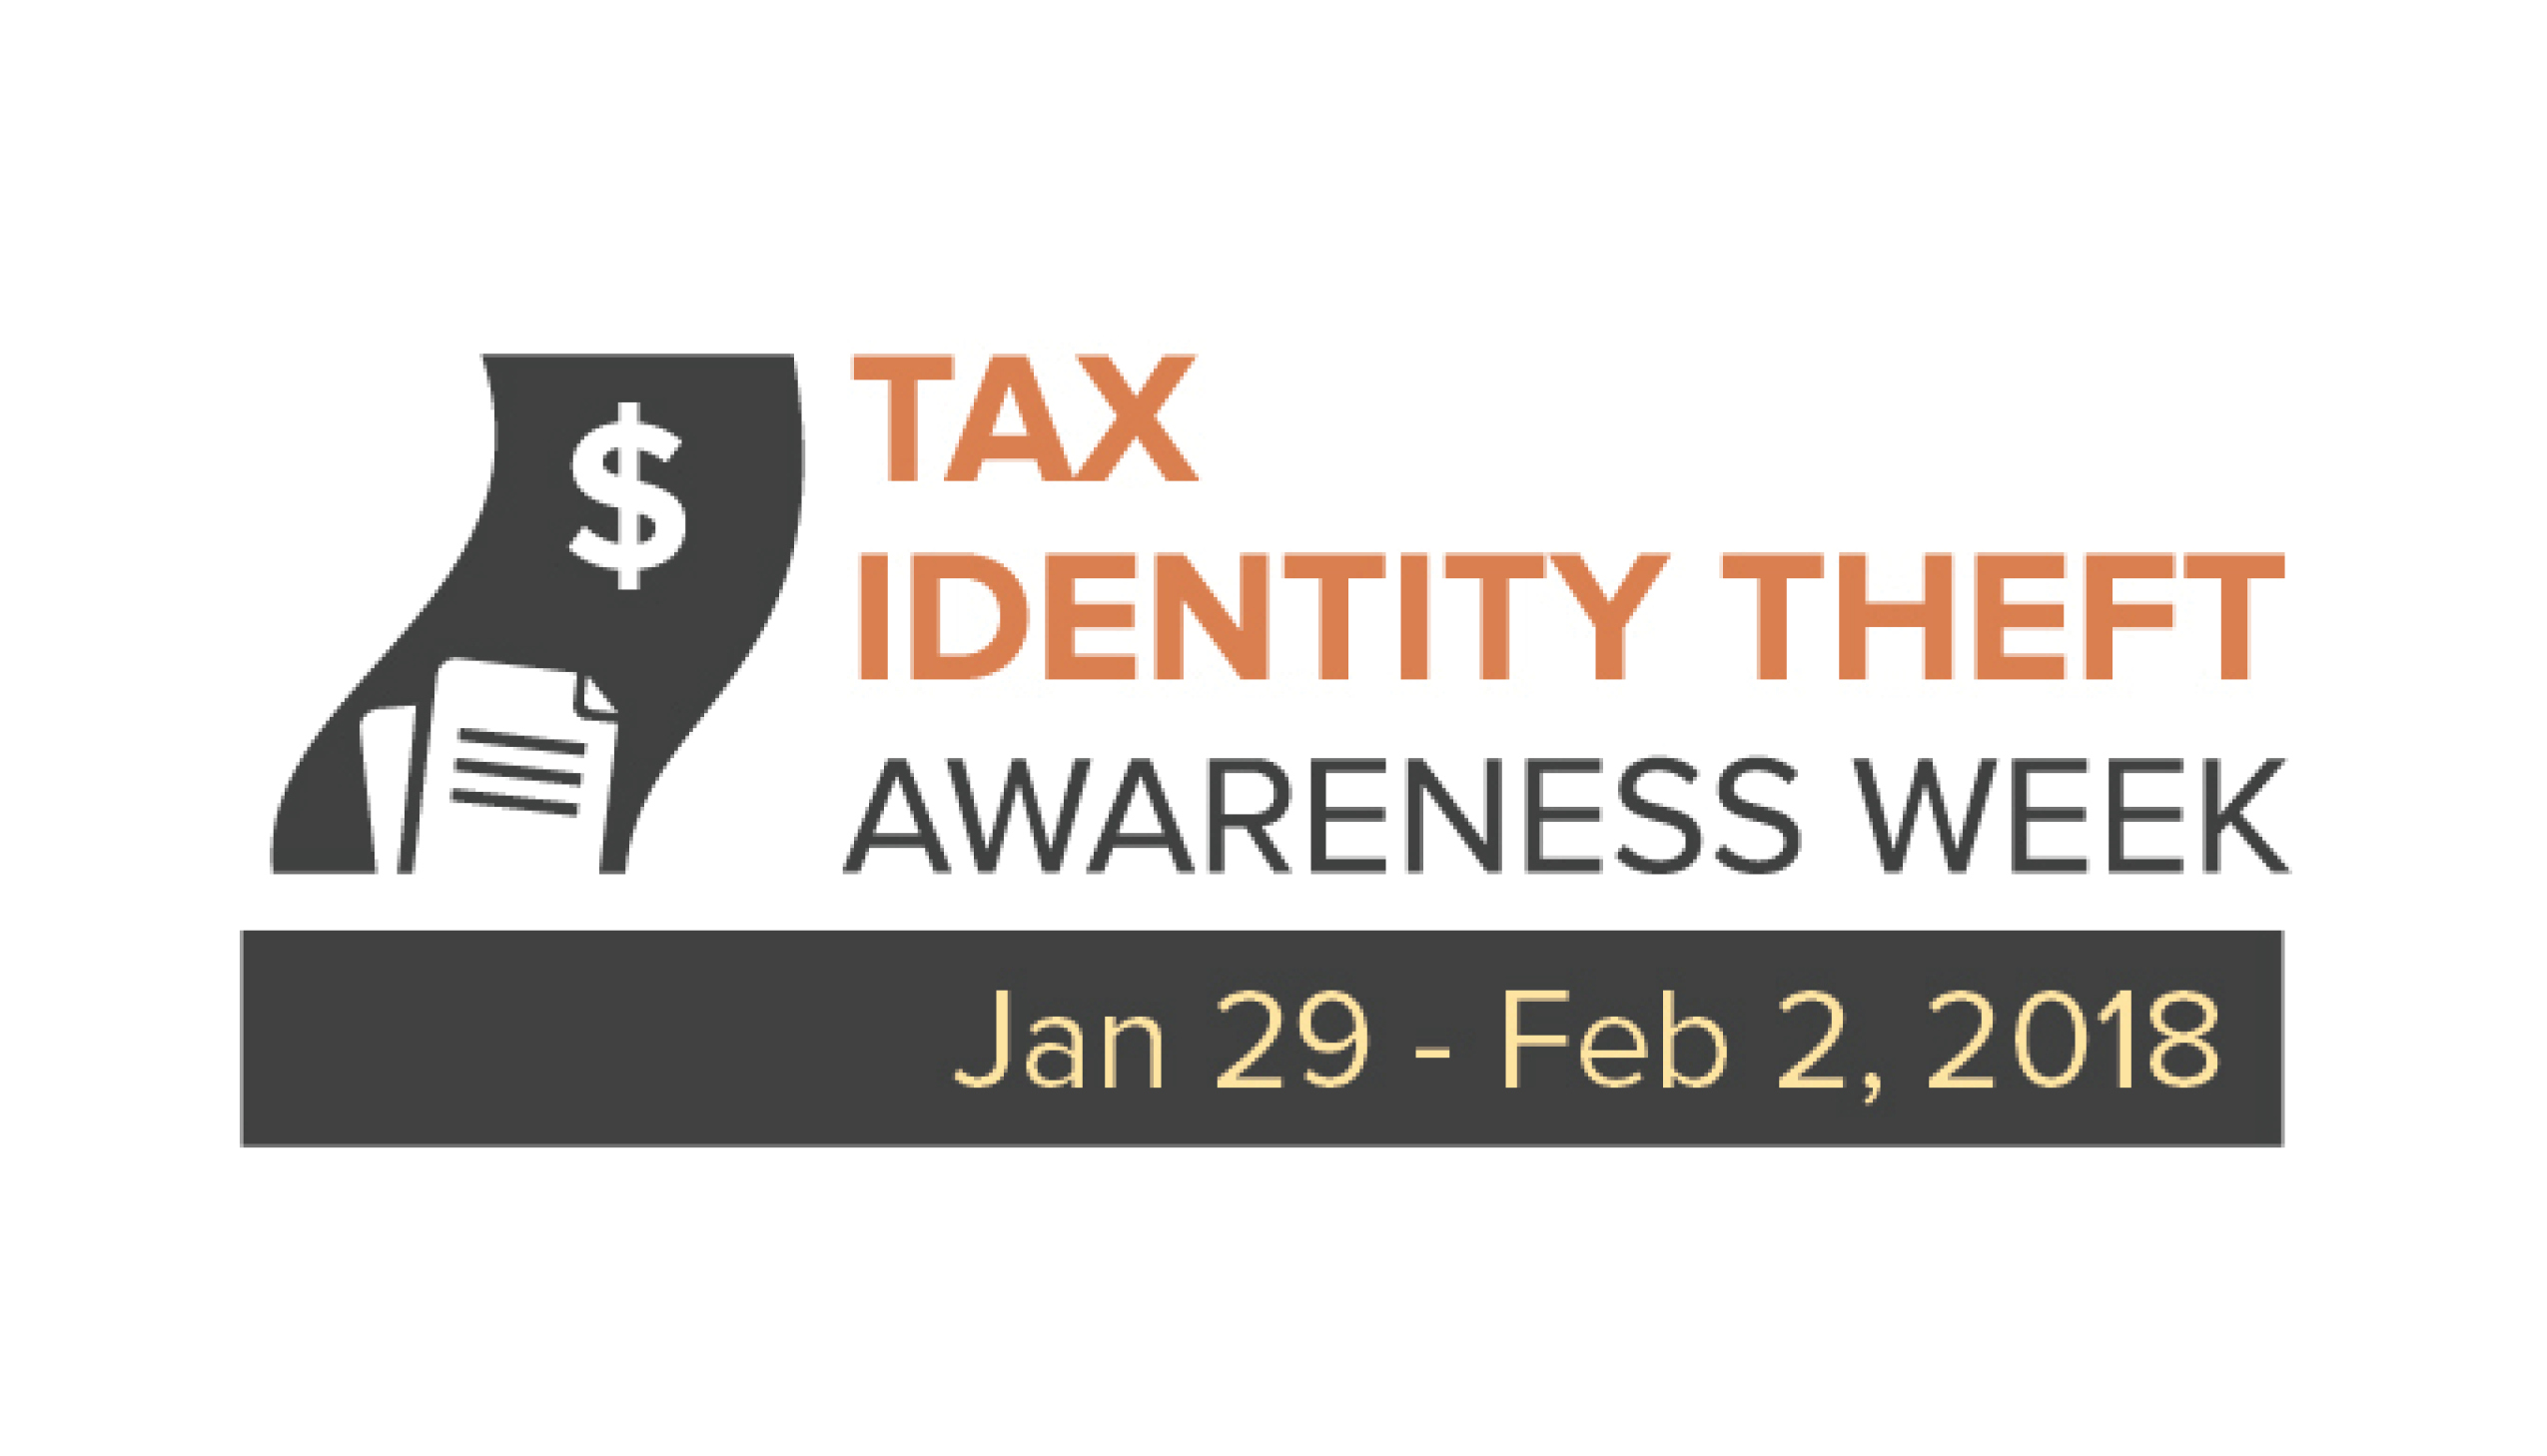 A week's worth of tips to avoid and address tax scams